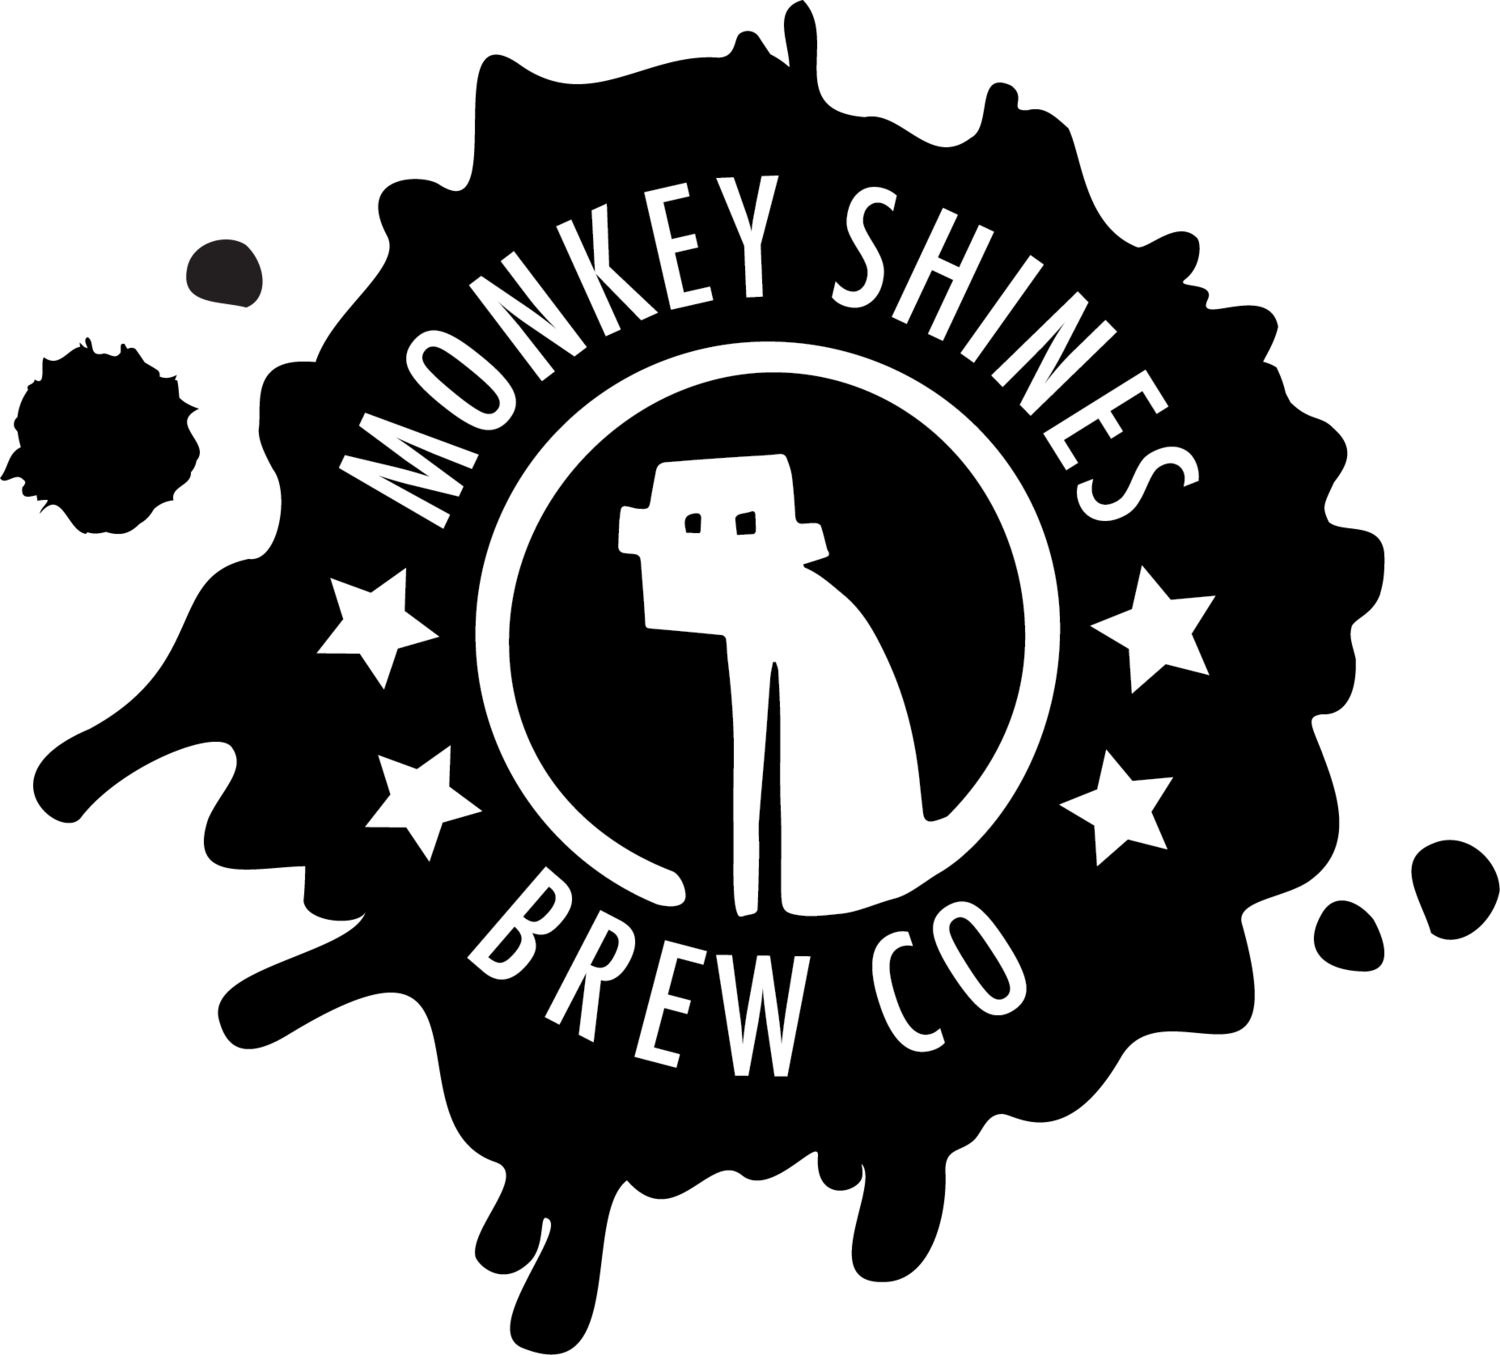 Monkey Shines Brew Co | Australian Cider + Ginger Beer